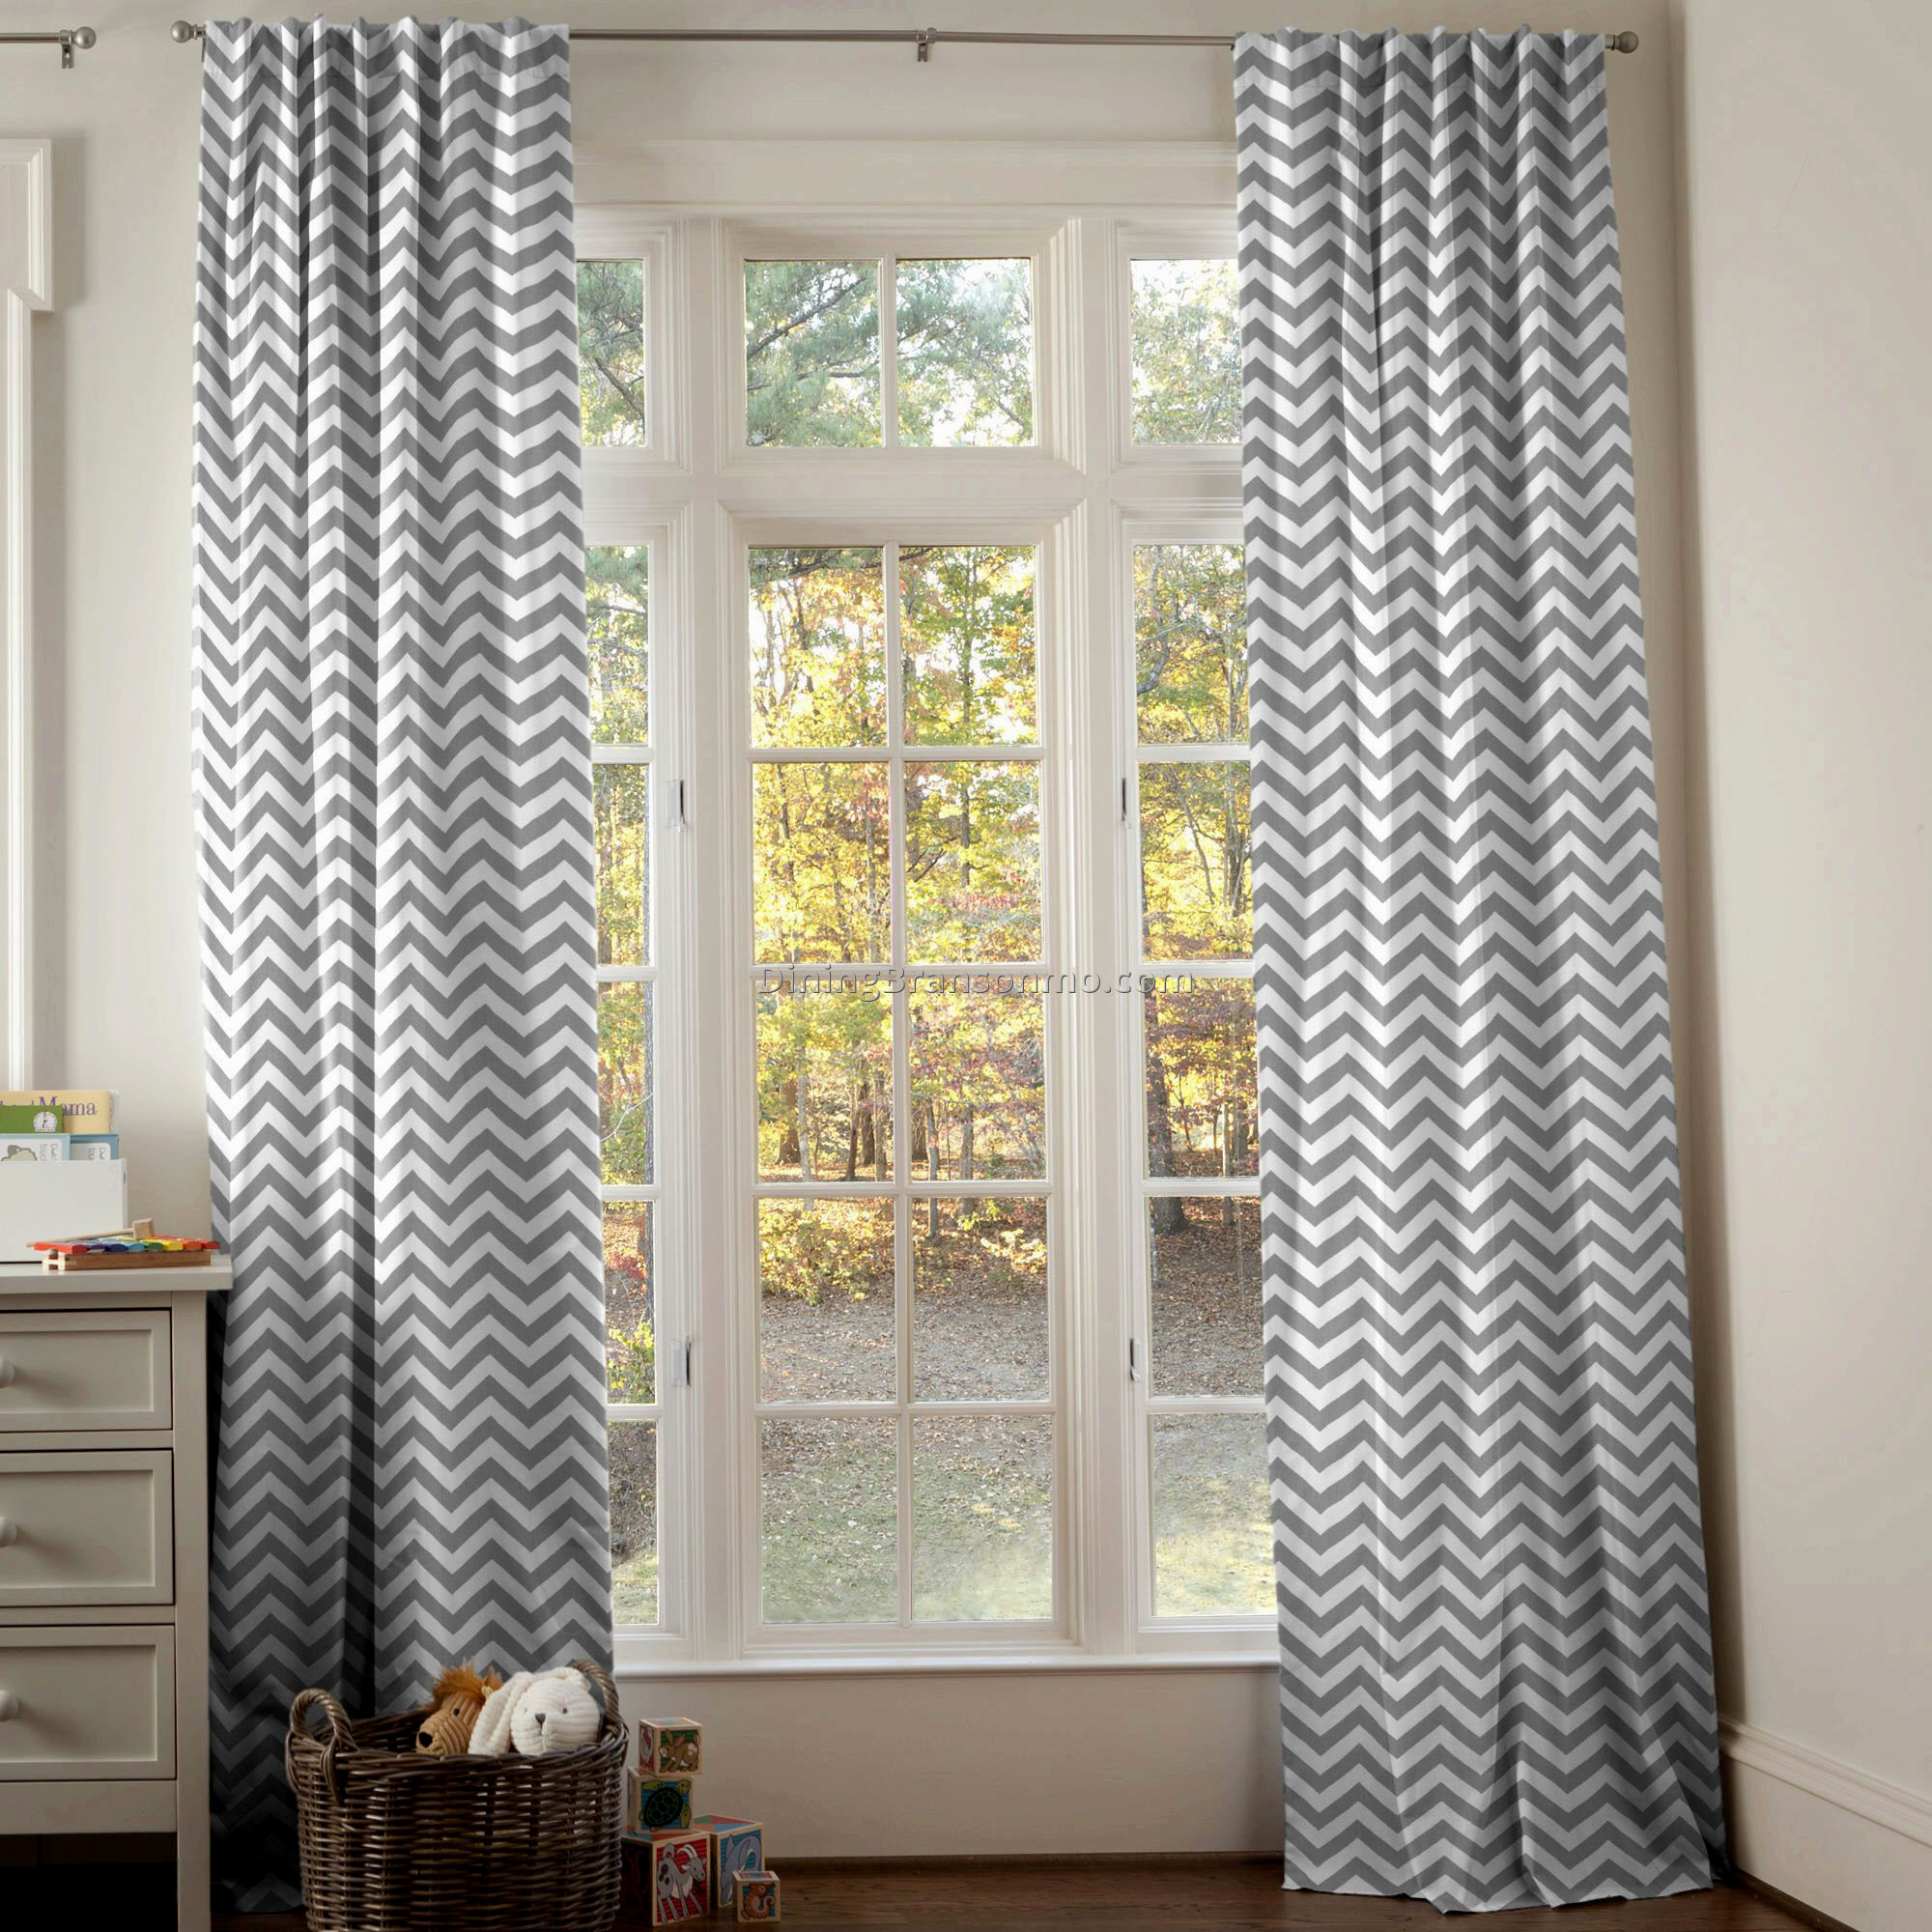 Ruffle Blackout Curtains | Blackout Curtains for Girls Room | Turquoise Polka Dot Curtains